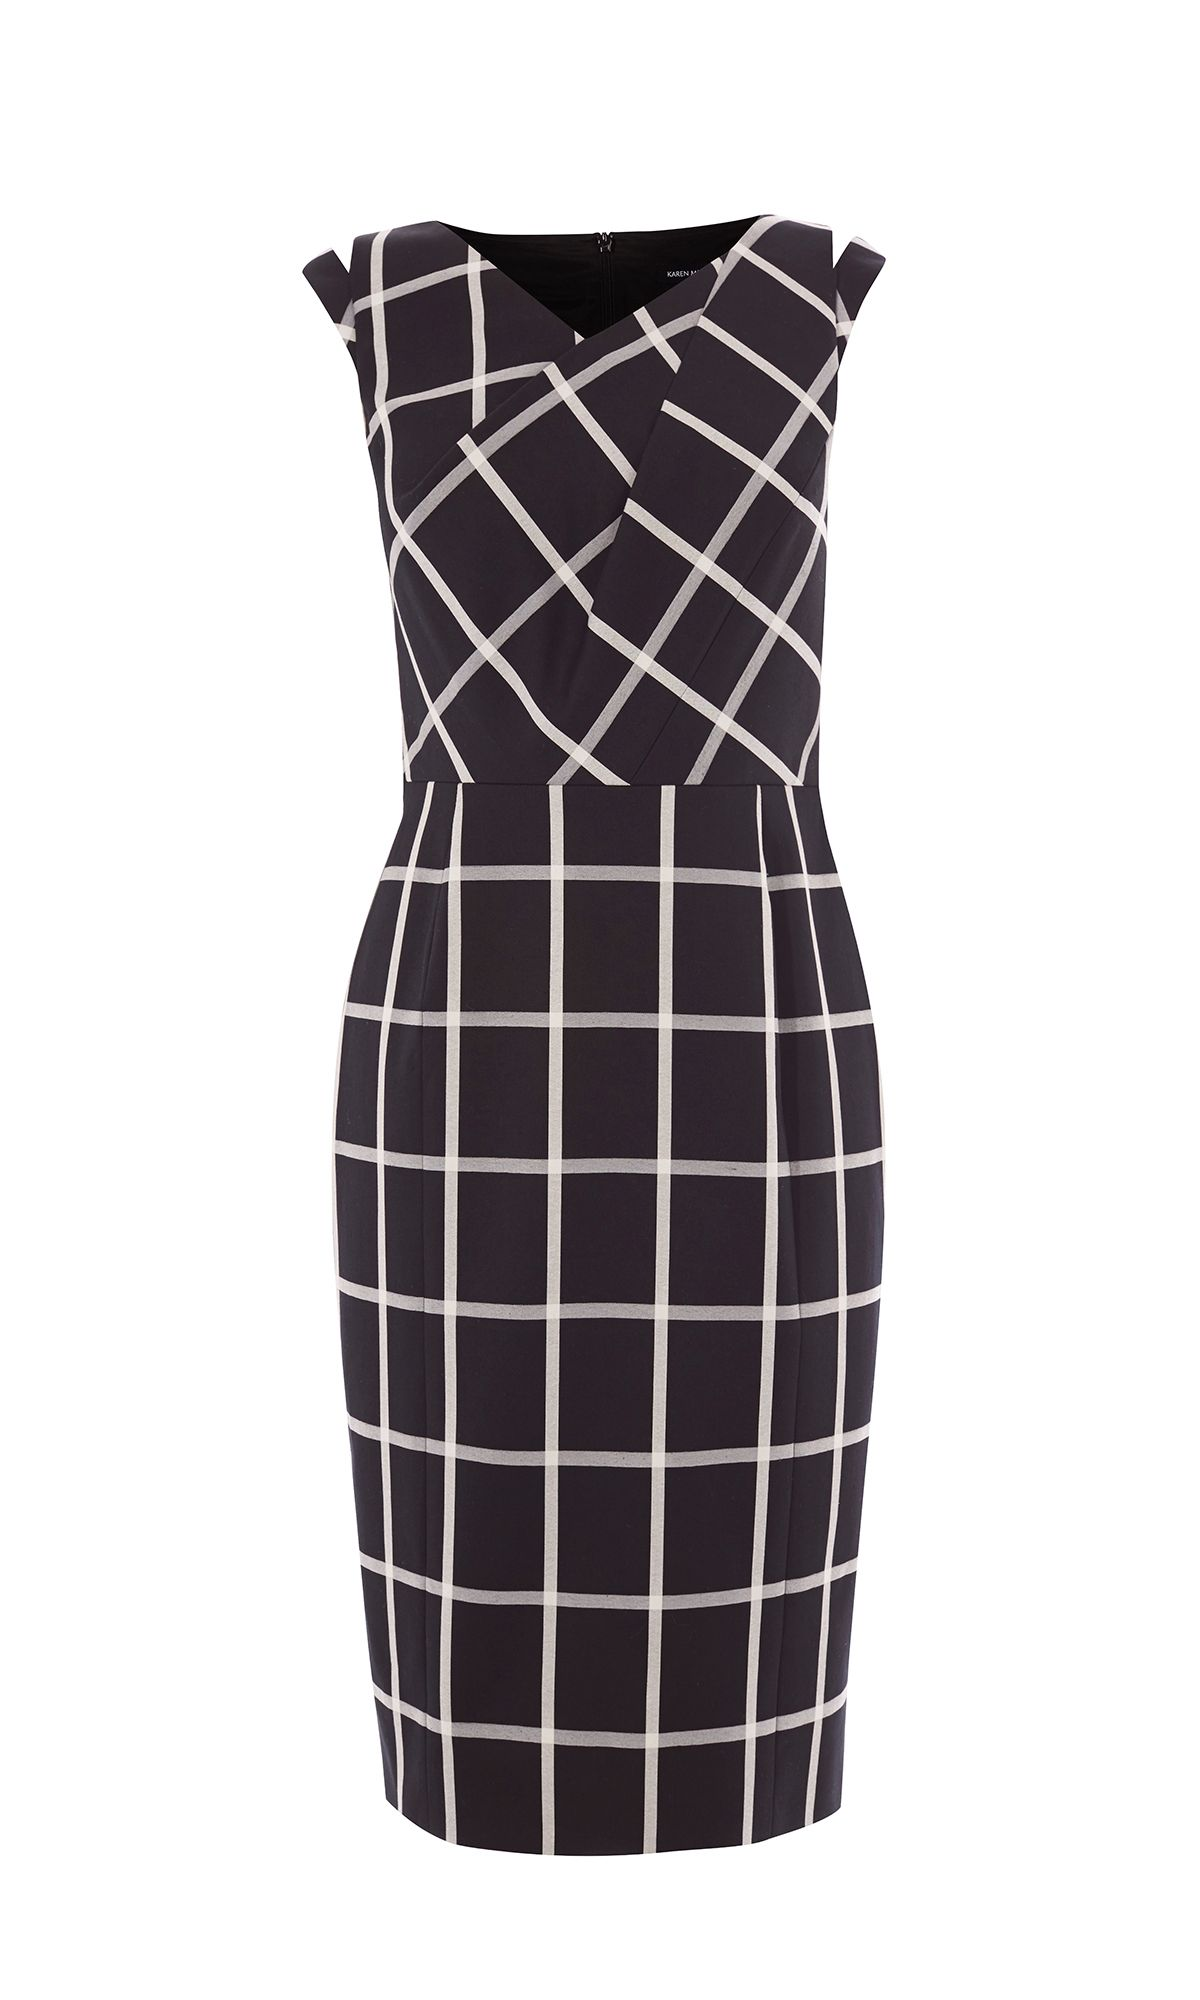 Karen Millen Windowpane Check Dress, Black/White